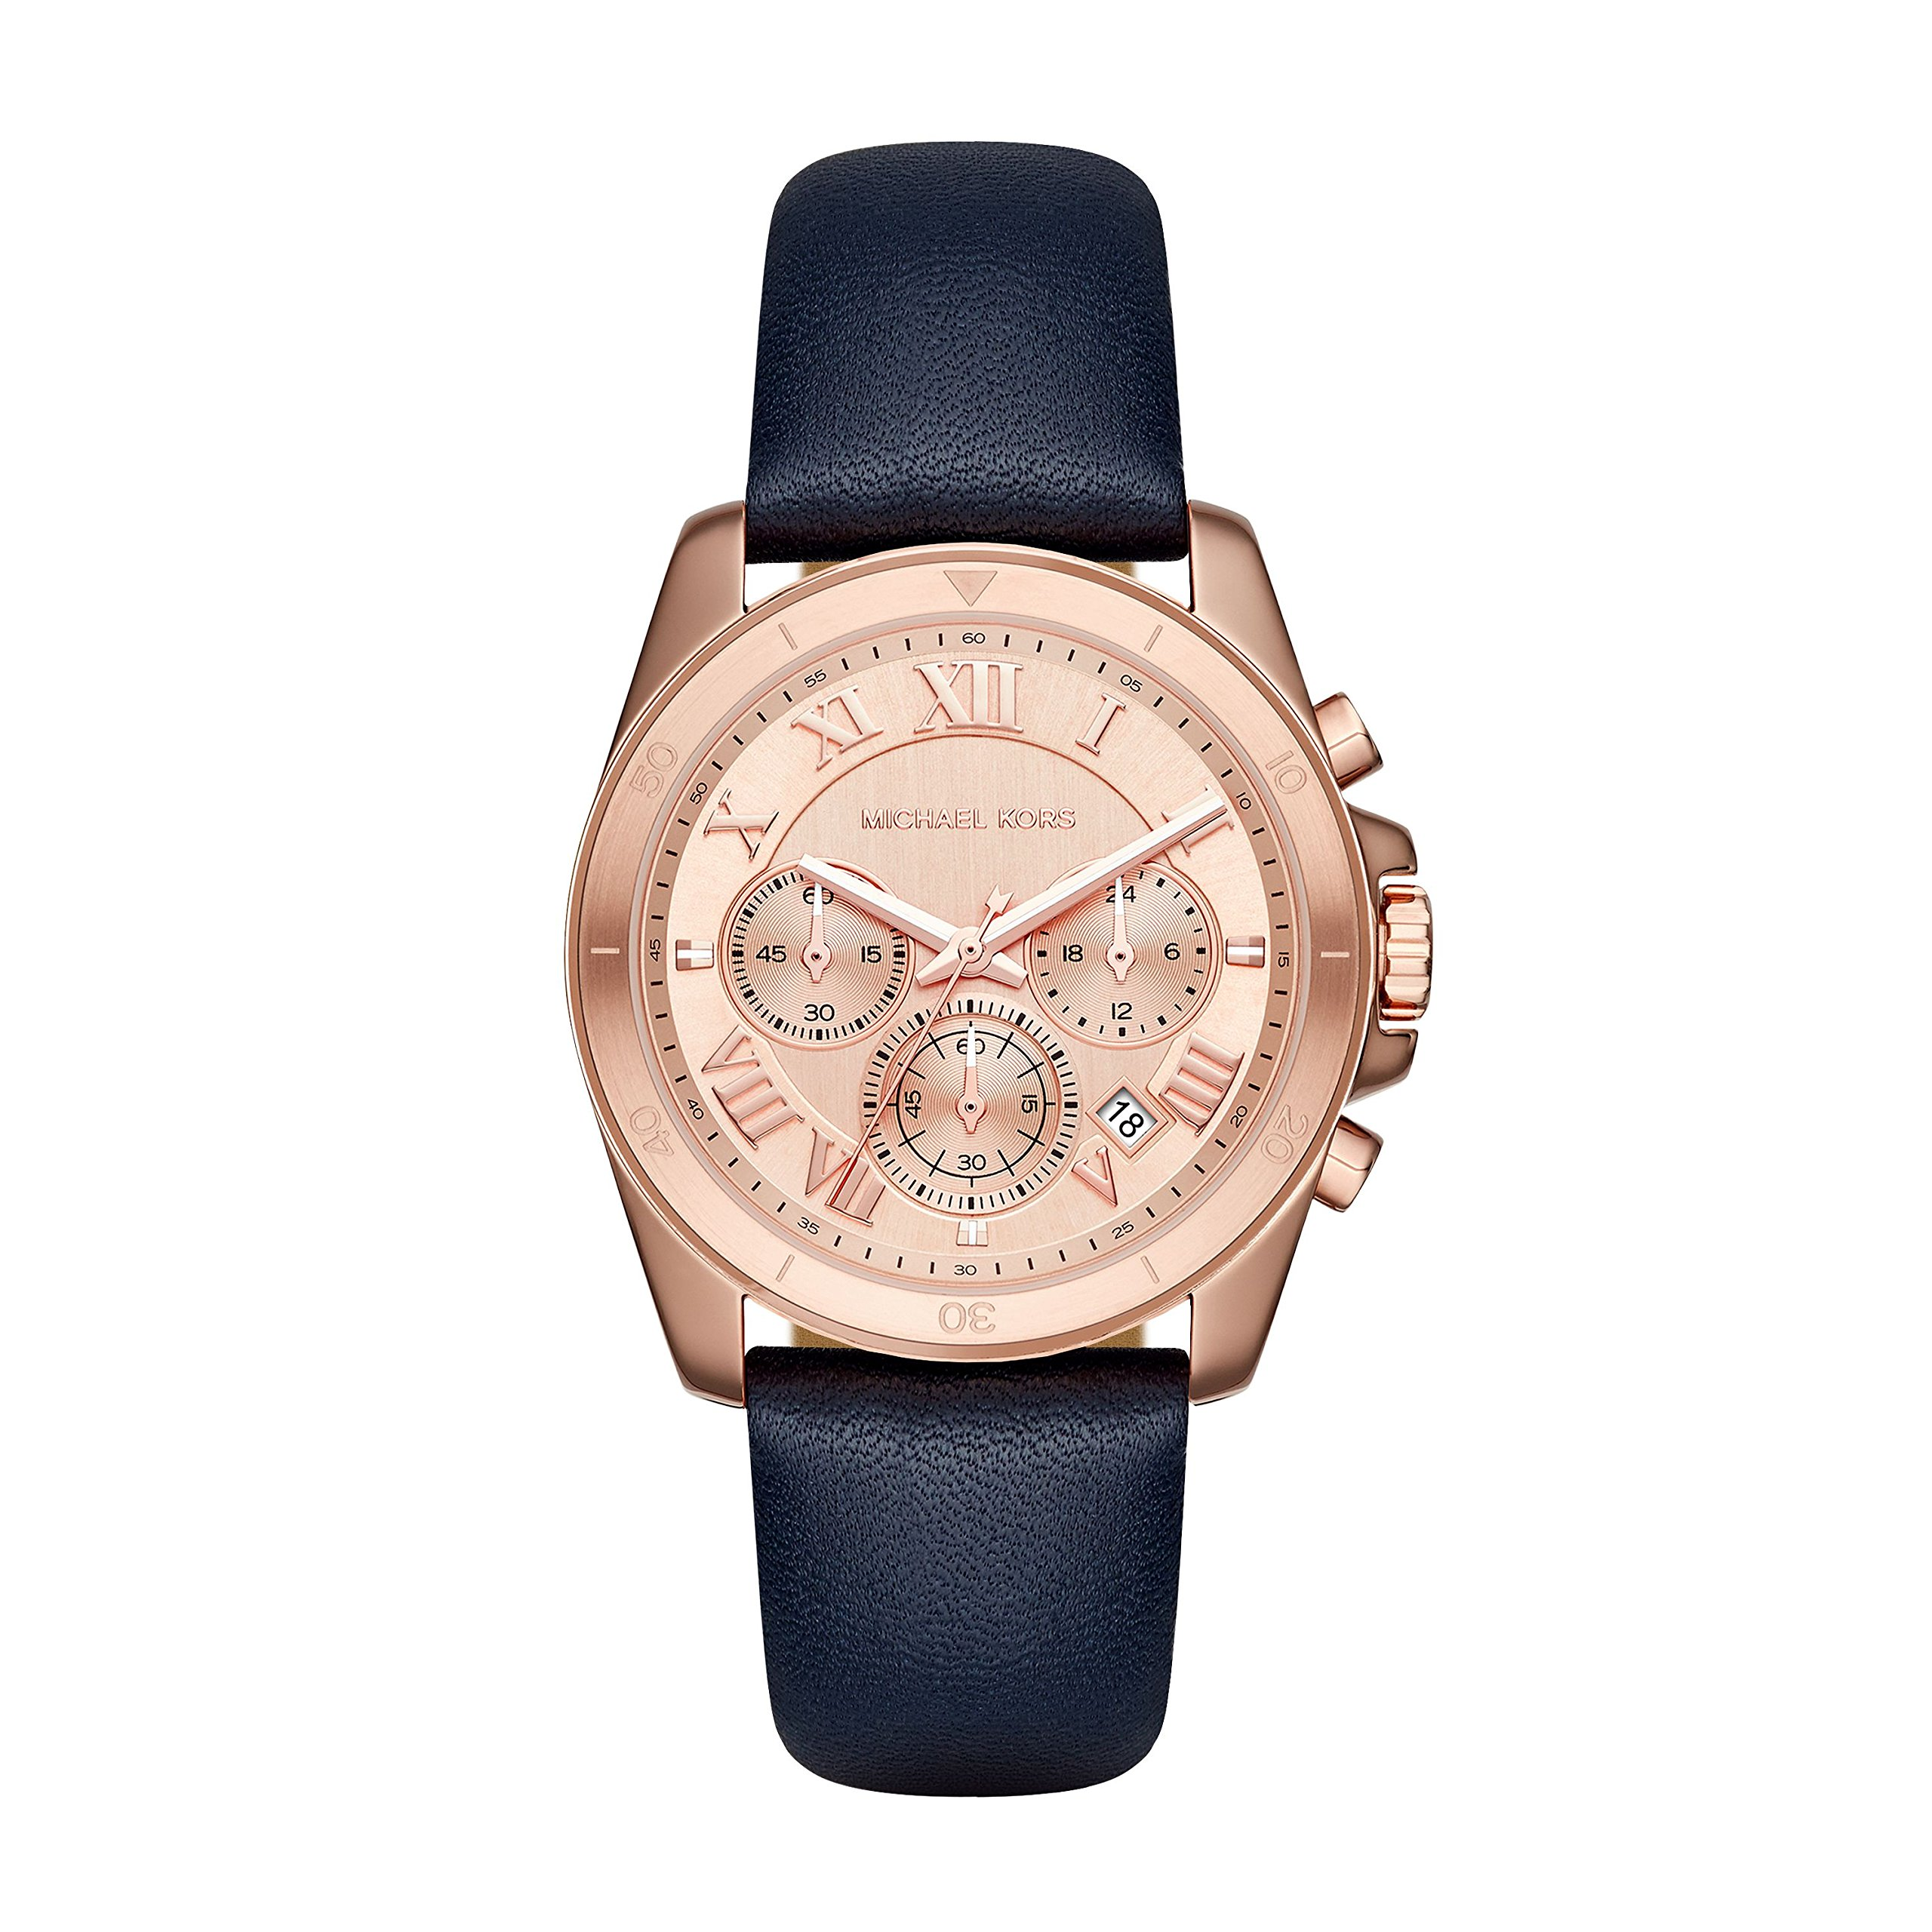 Michael Kors Brecken Rose Gold-Tone And Blue Leather Chronograph Watch by Michael Kors